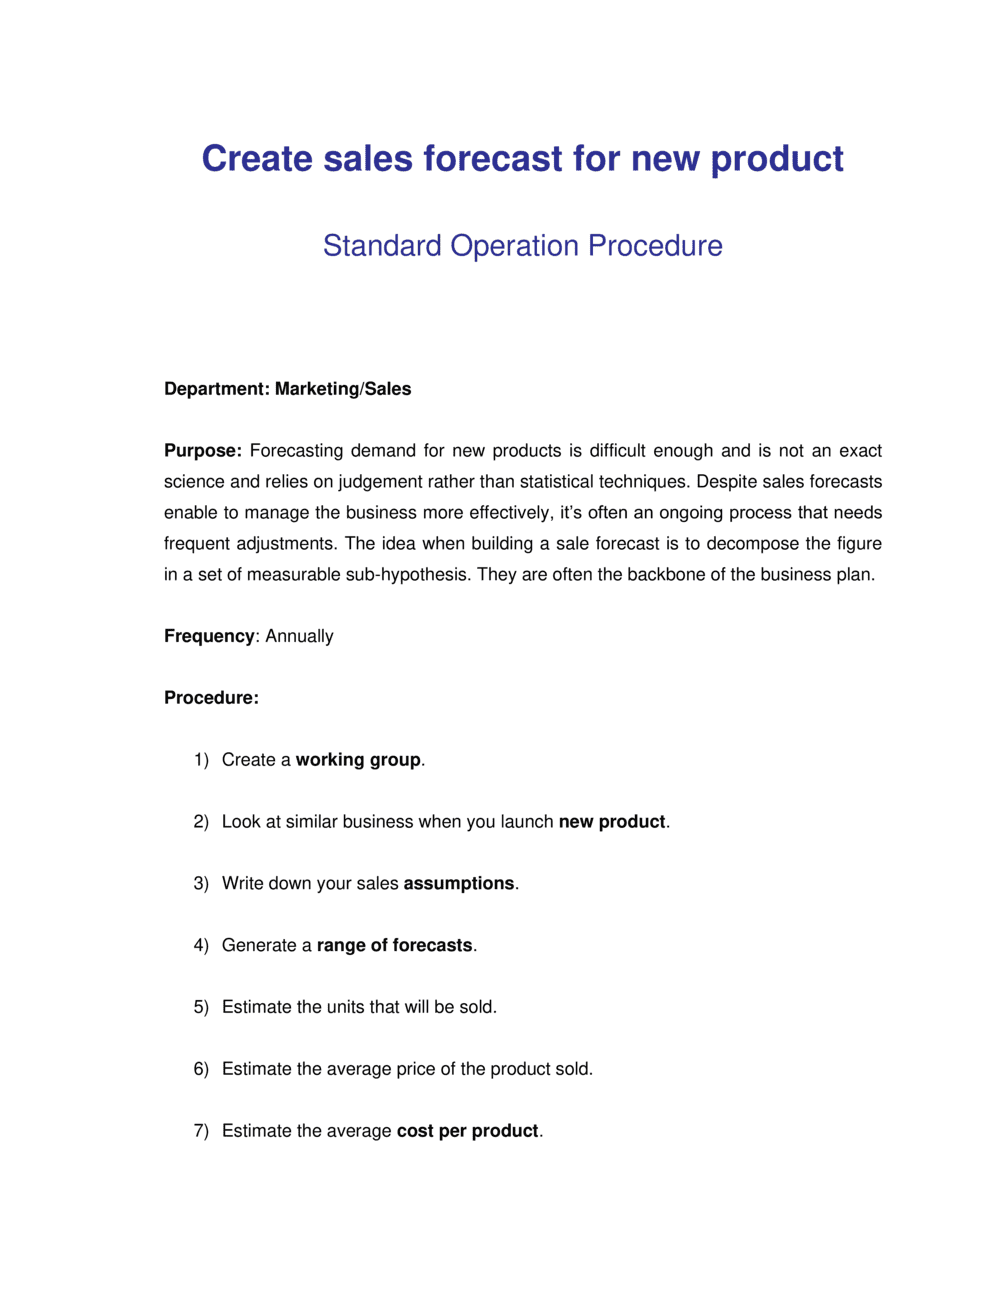 Business-in-a-Box's How to Create Sales Forecast for New Product Template